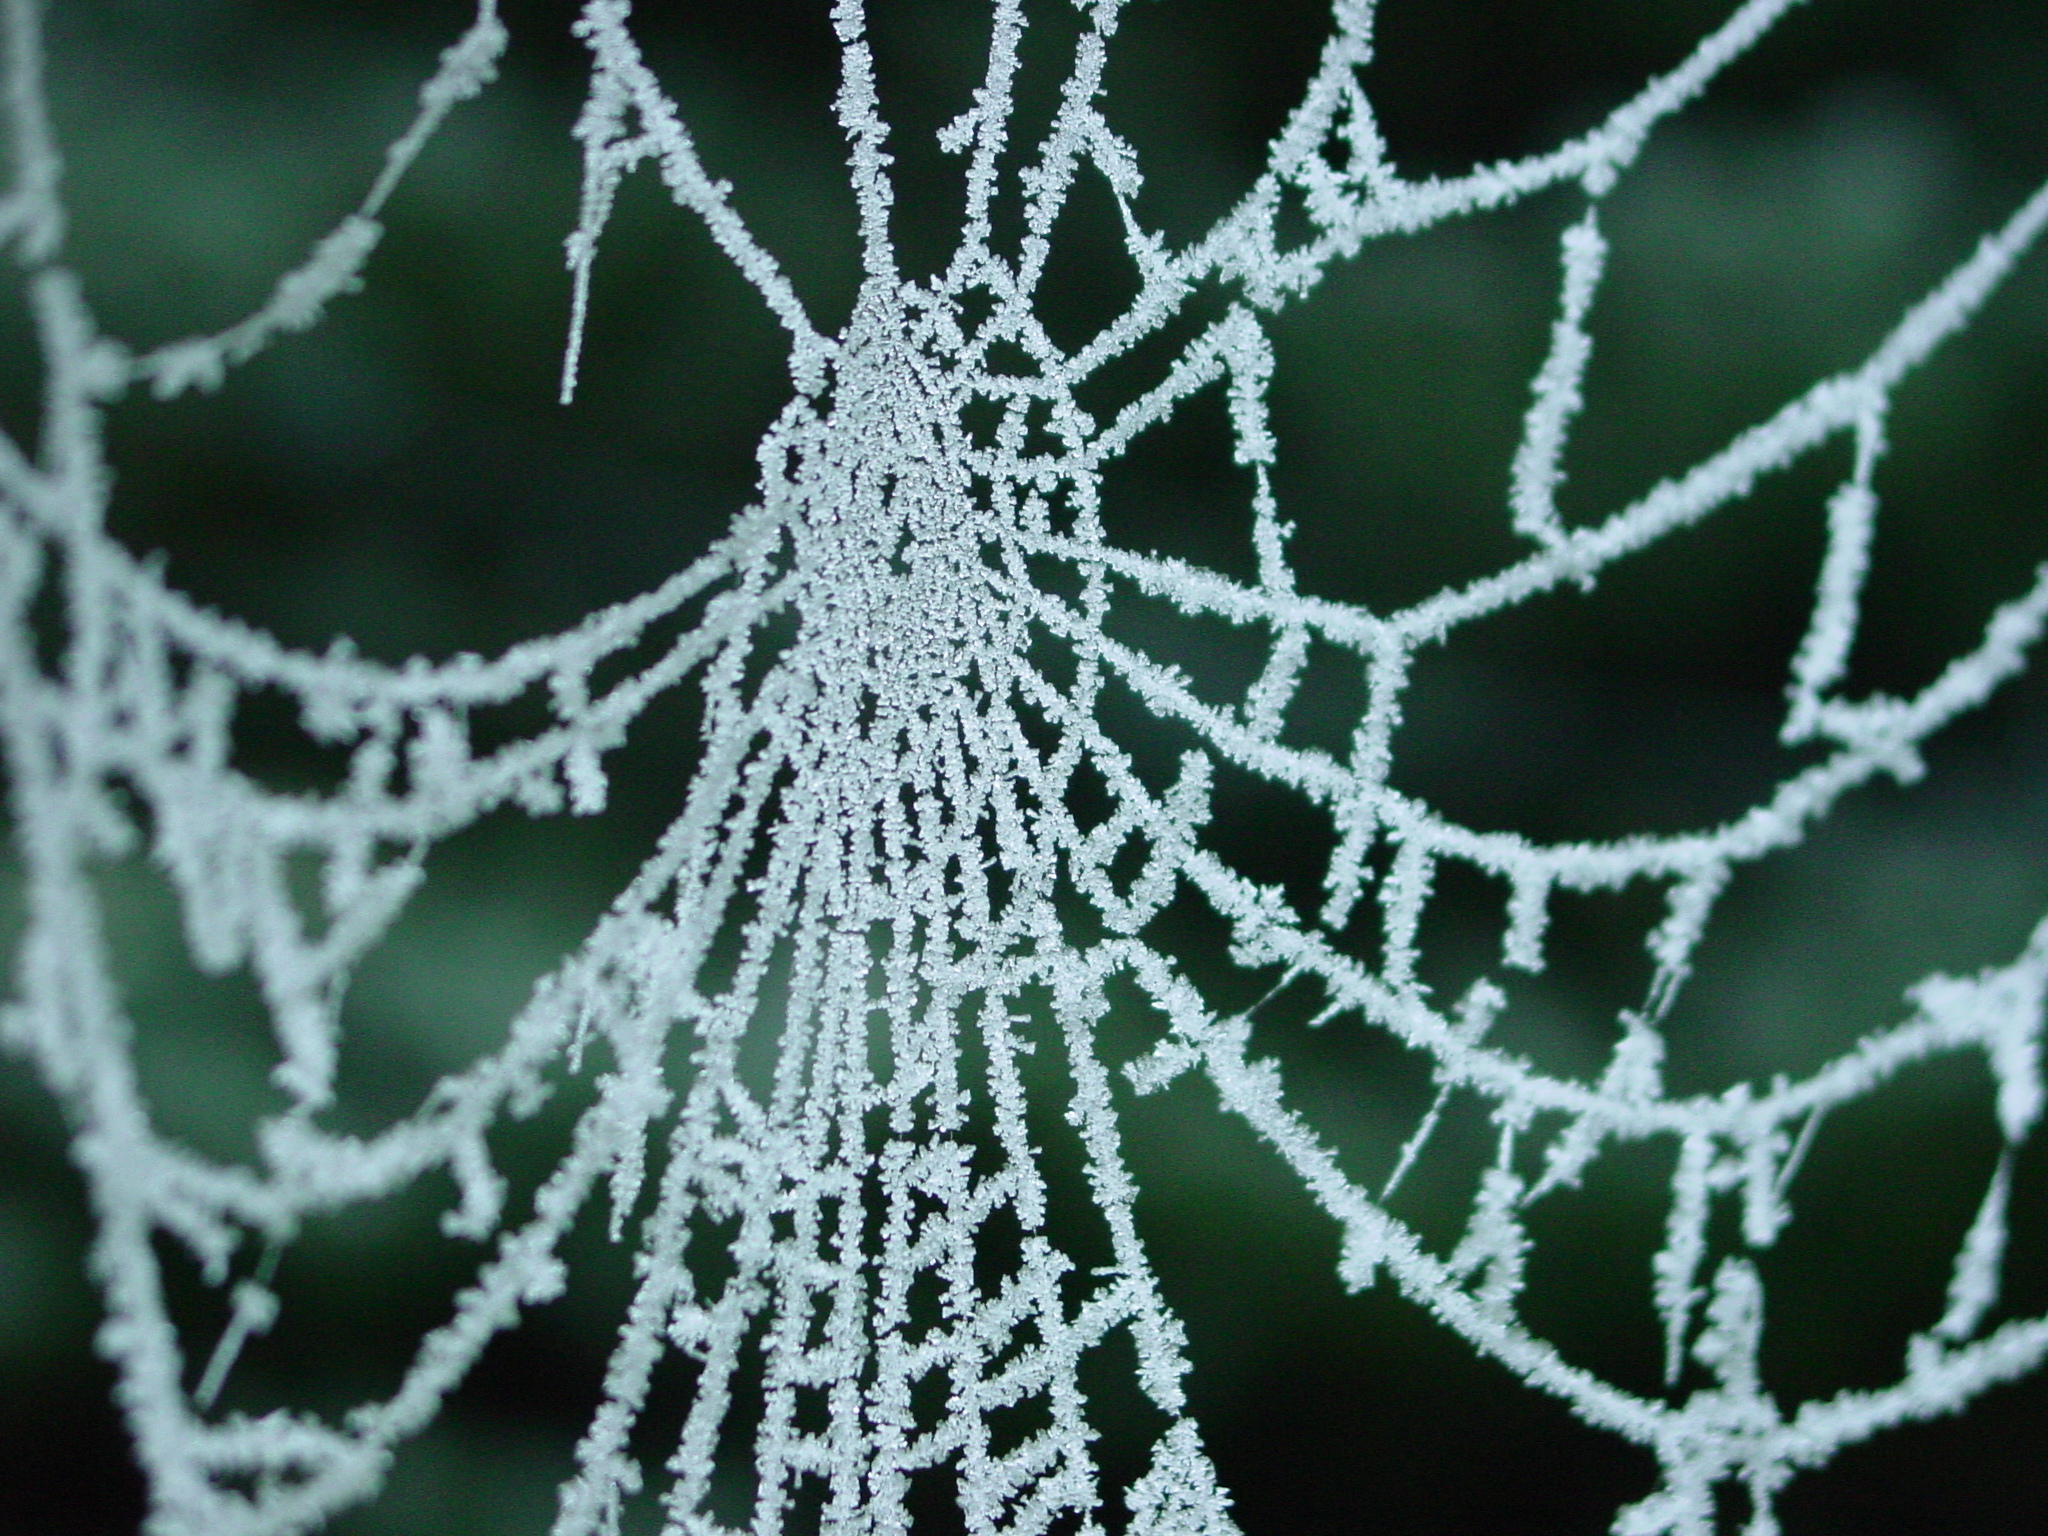 Amazing Spider Web Pictures & Backgrounds